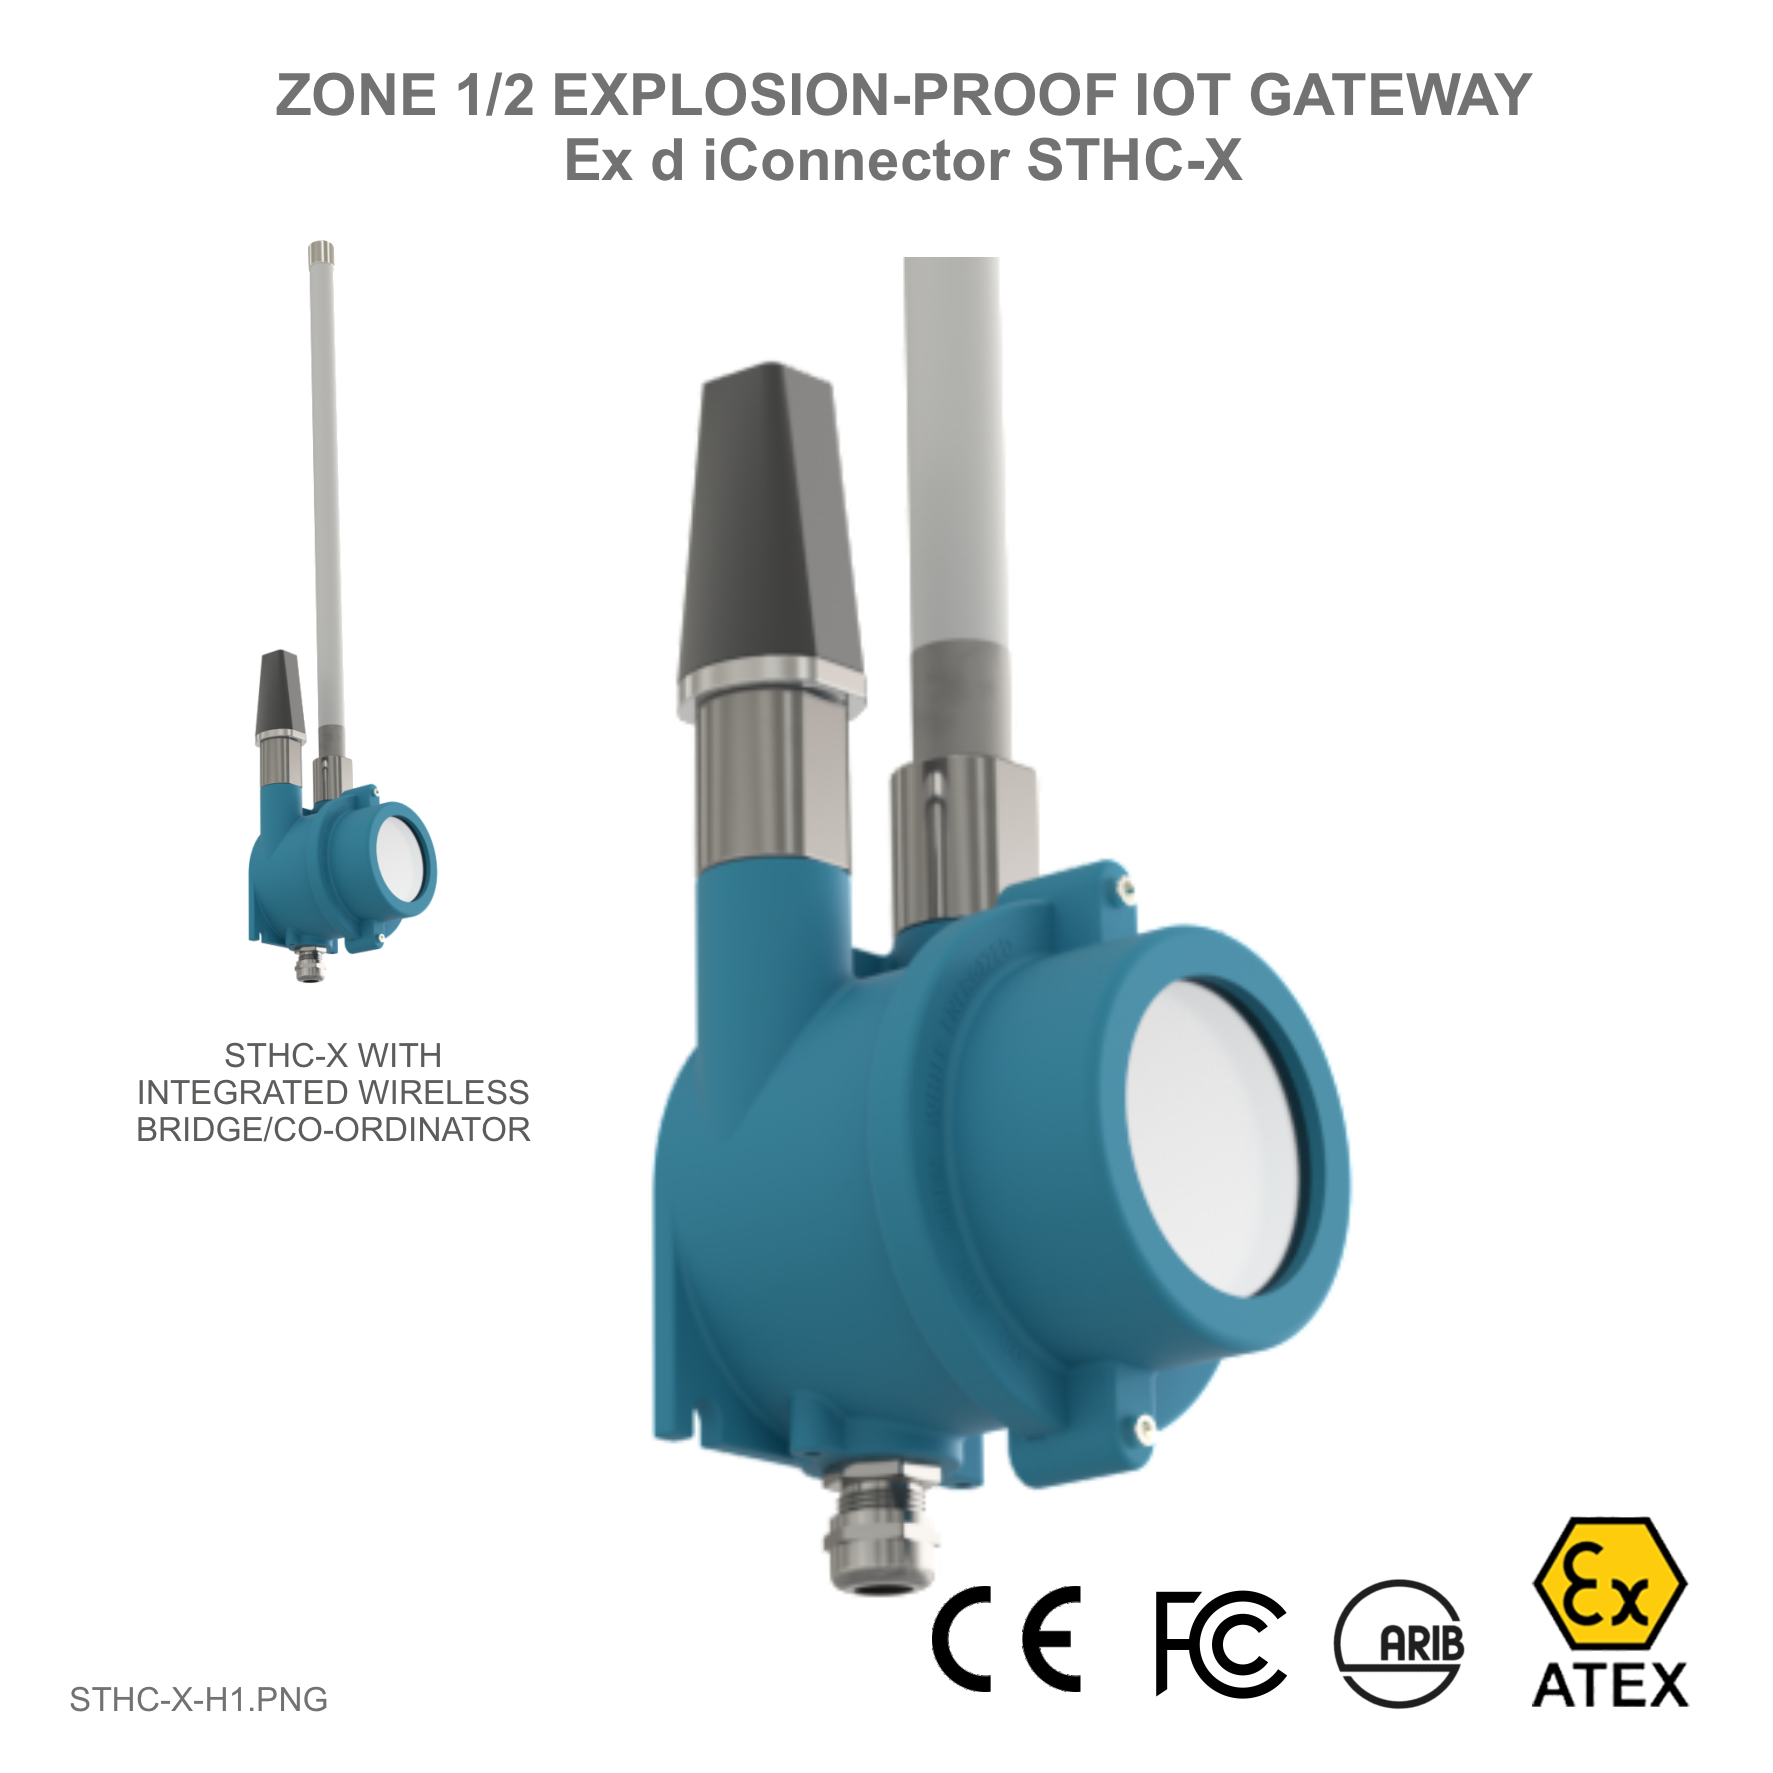 Ex d approved Smart IoT Gateway - Ex d iConnector